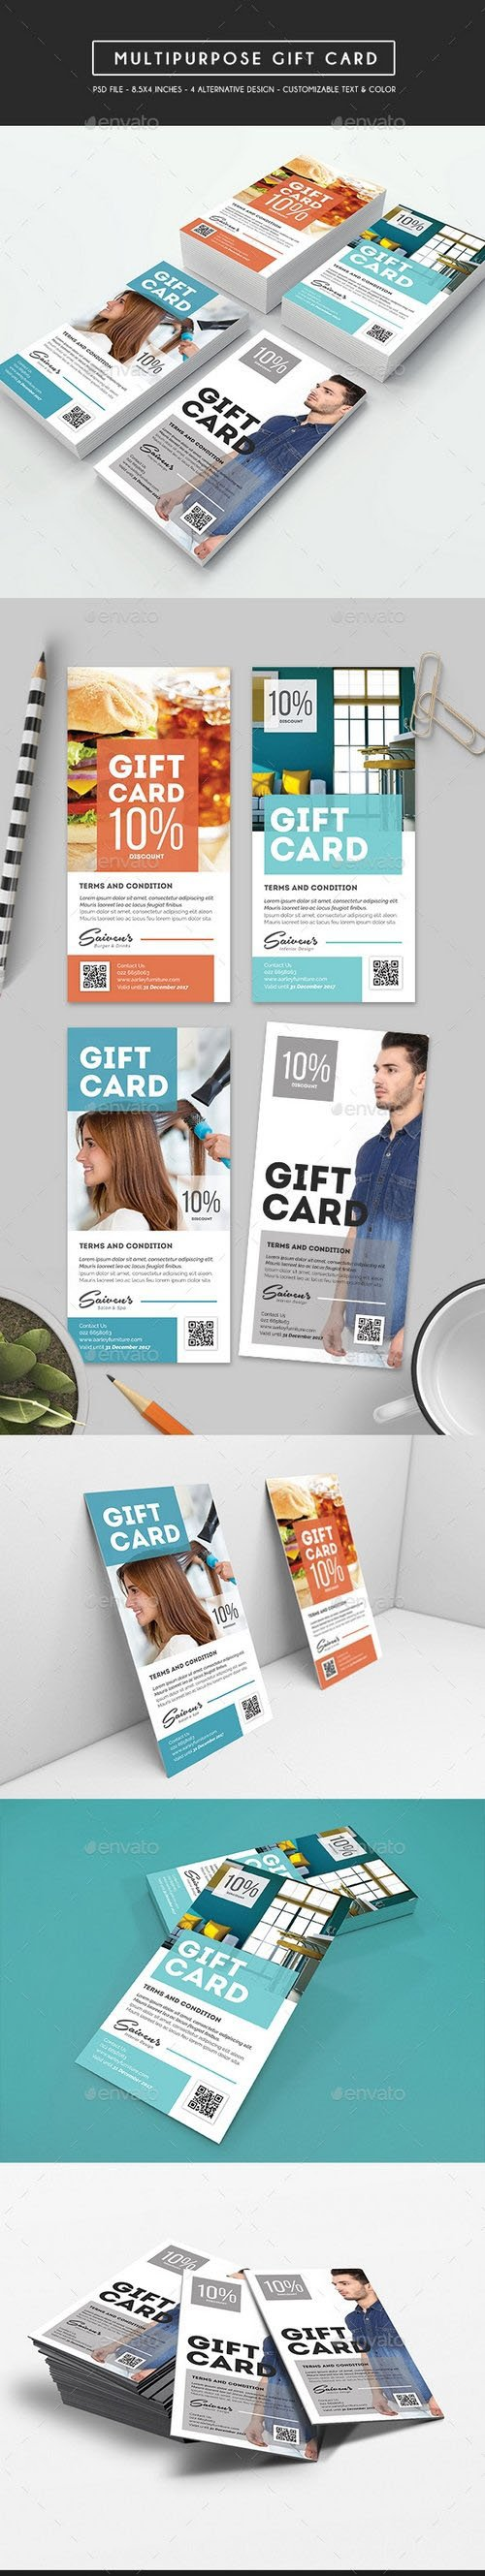 Graphicriver - Multipurpose Voucher / Gift Card 17211490